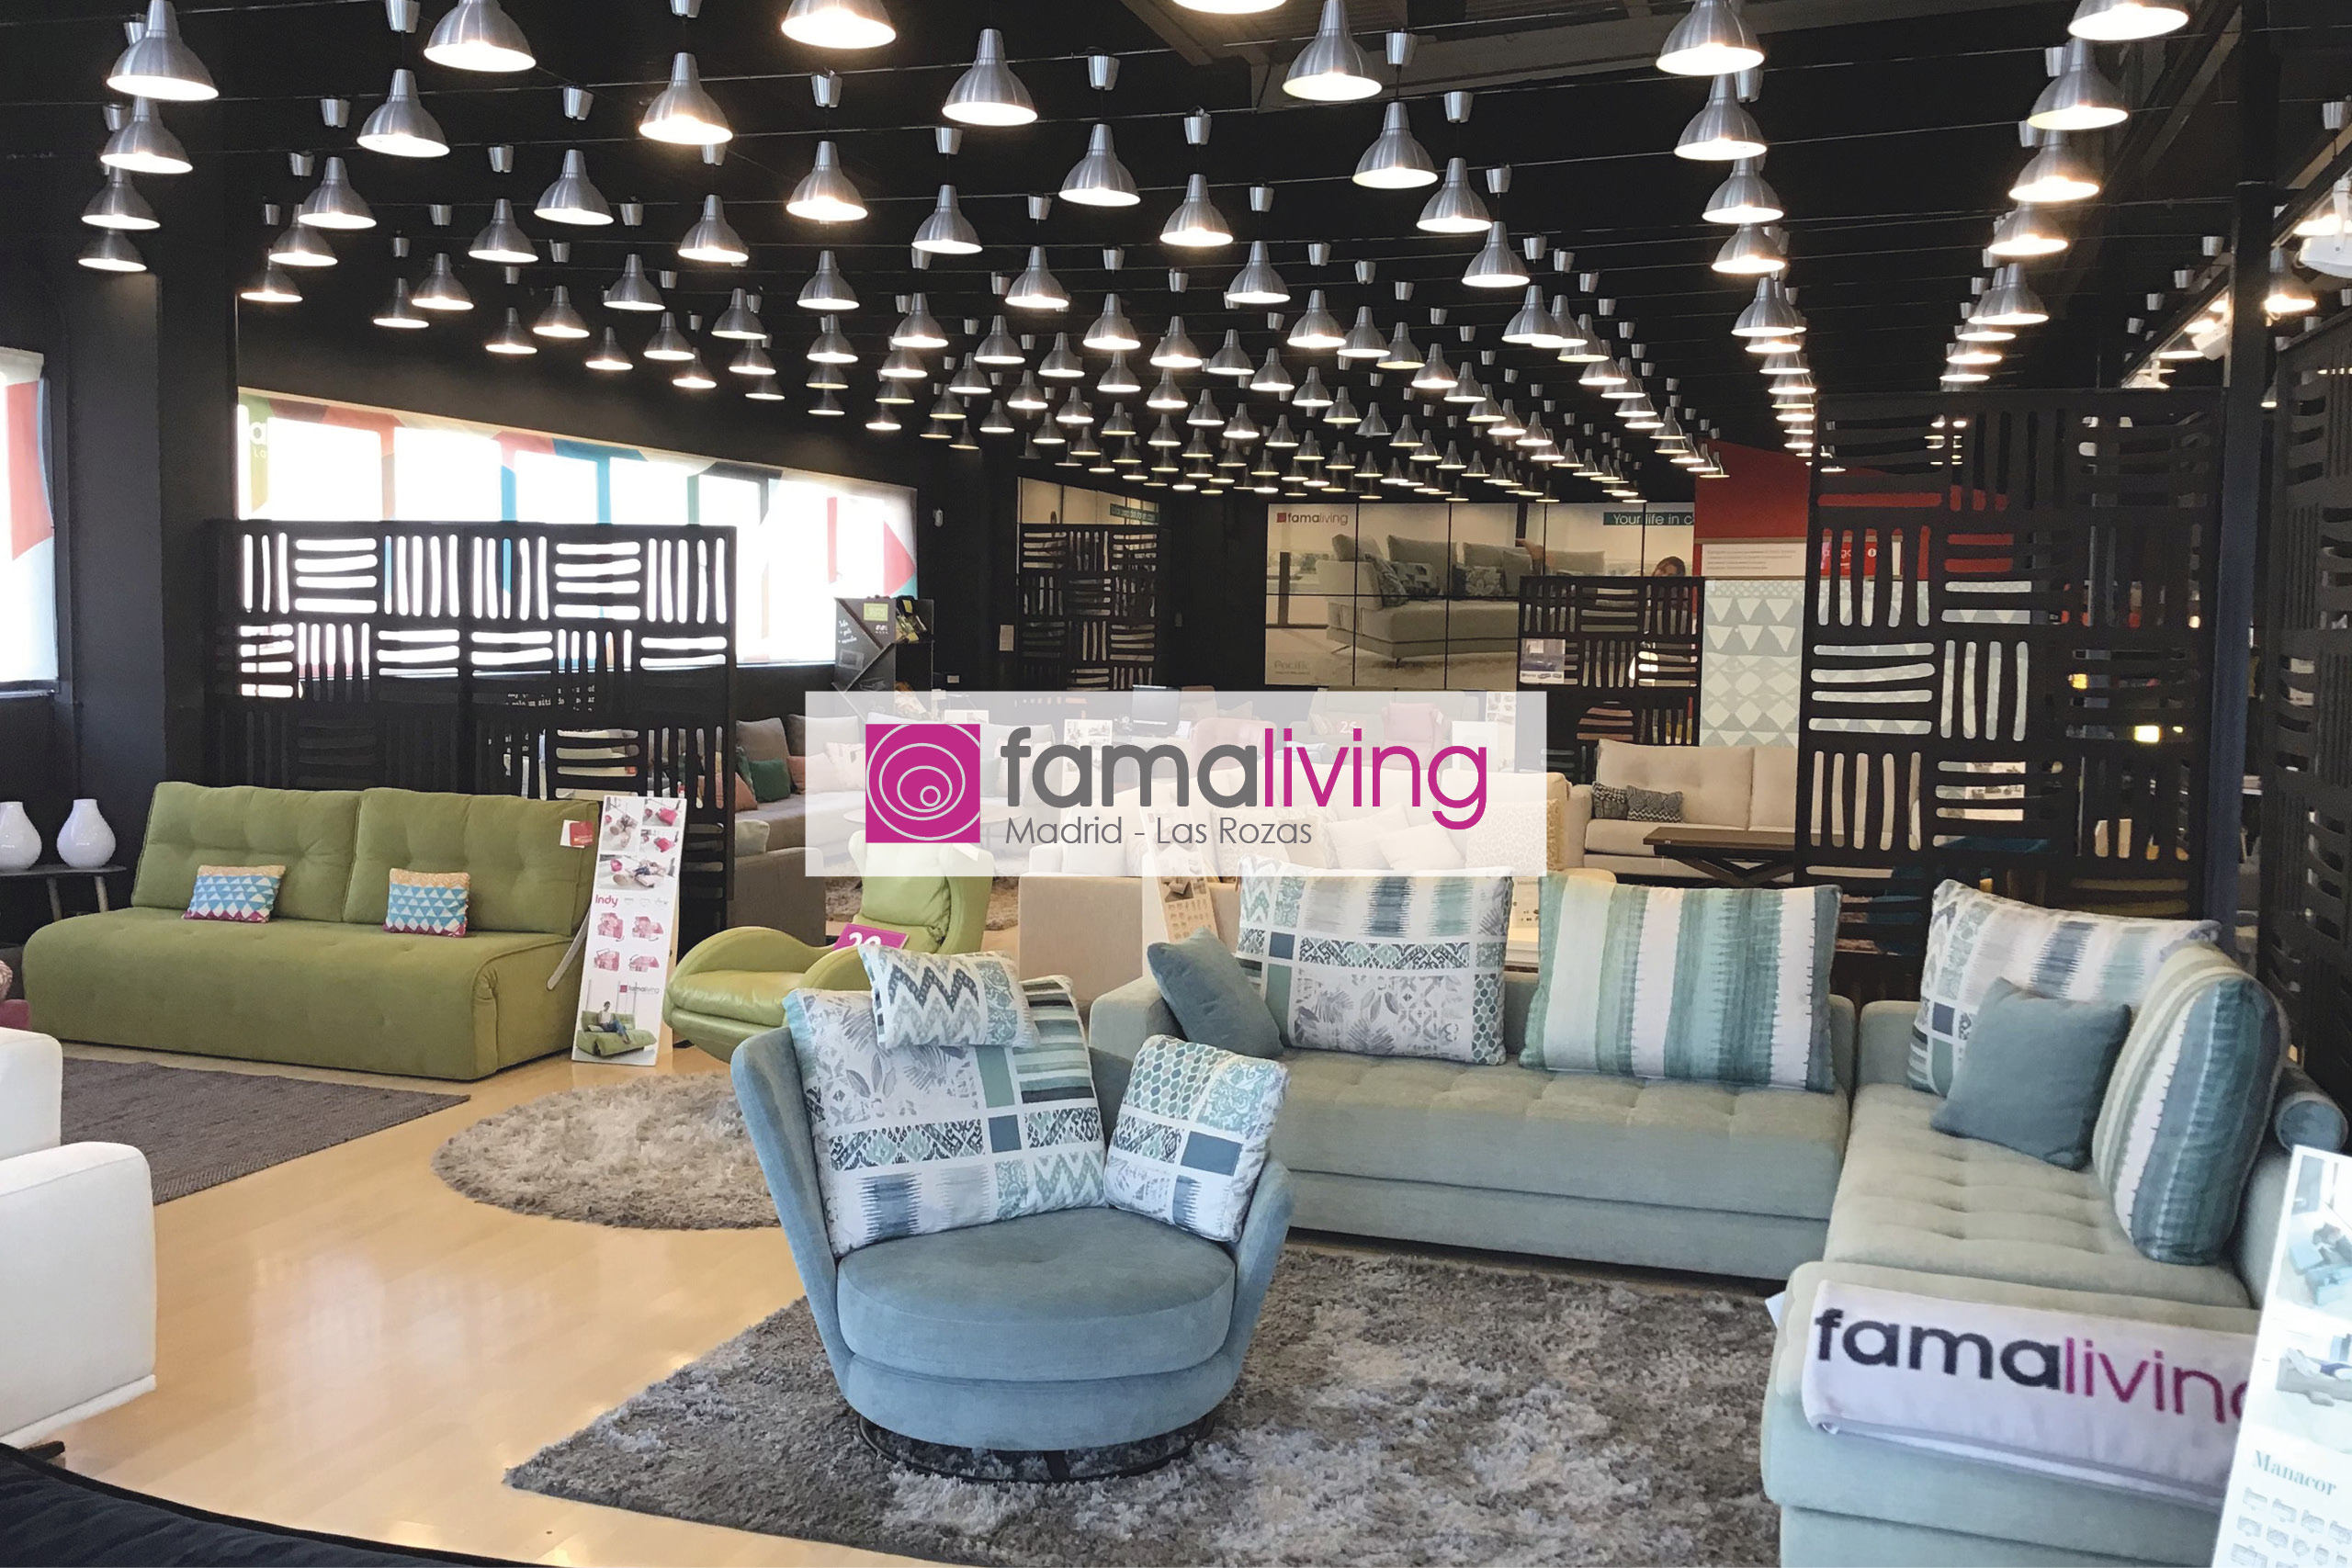 https://www.famaliving.com/madrid-las-rozas-en